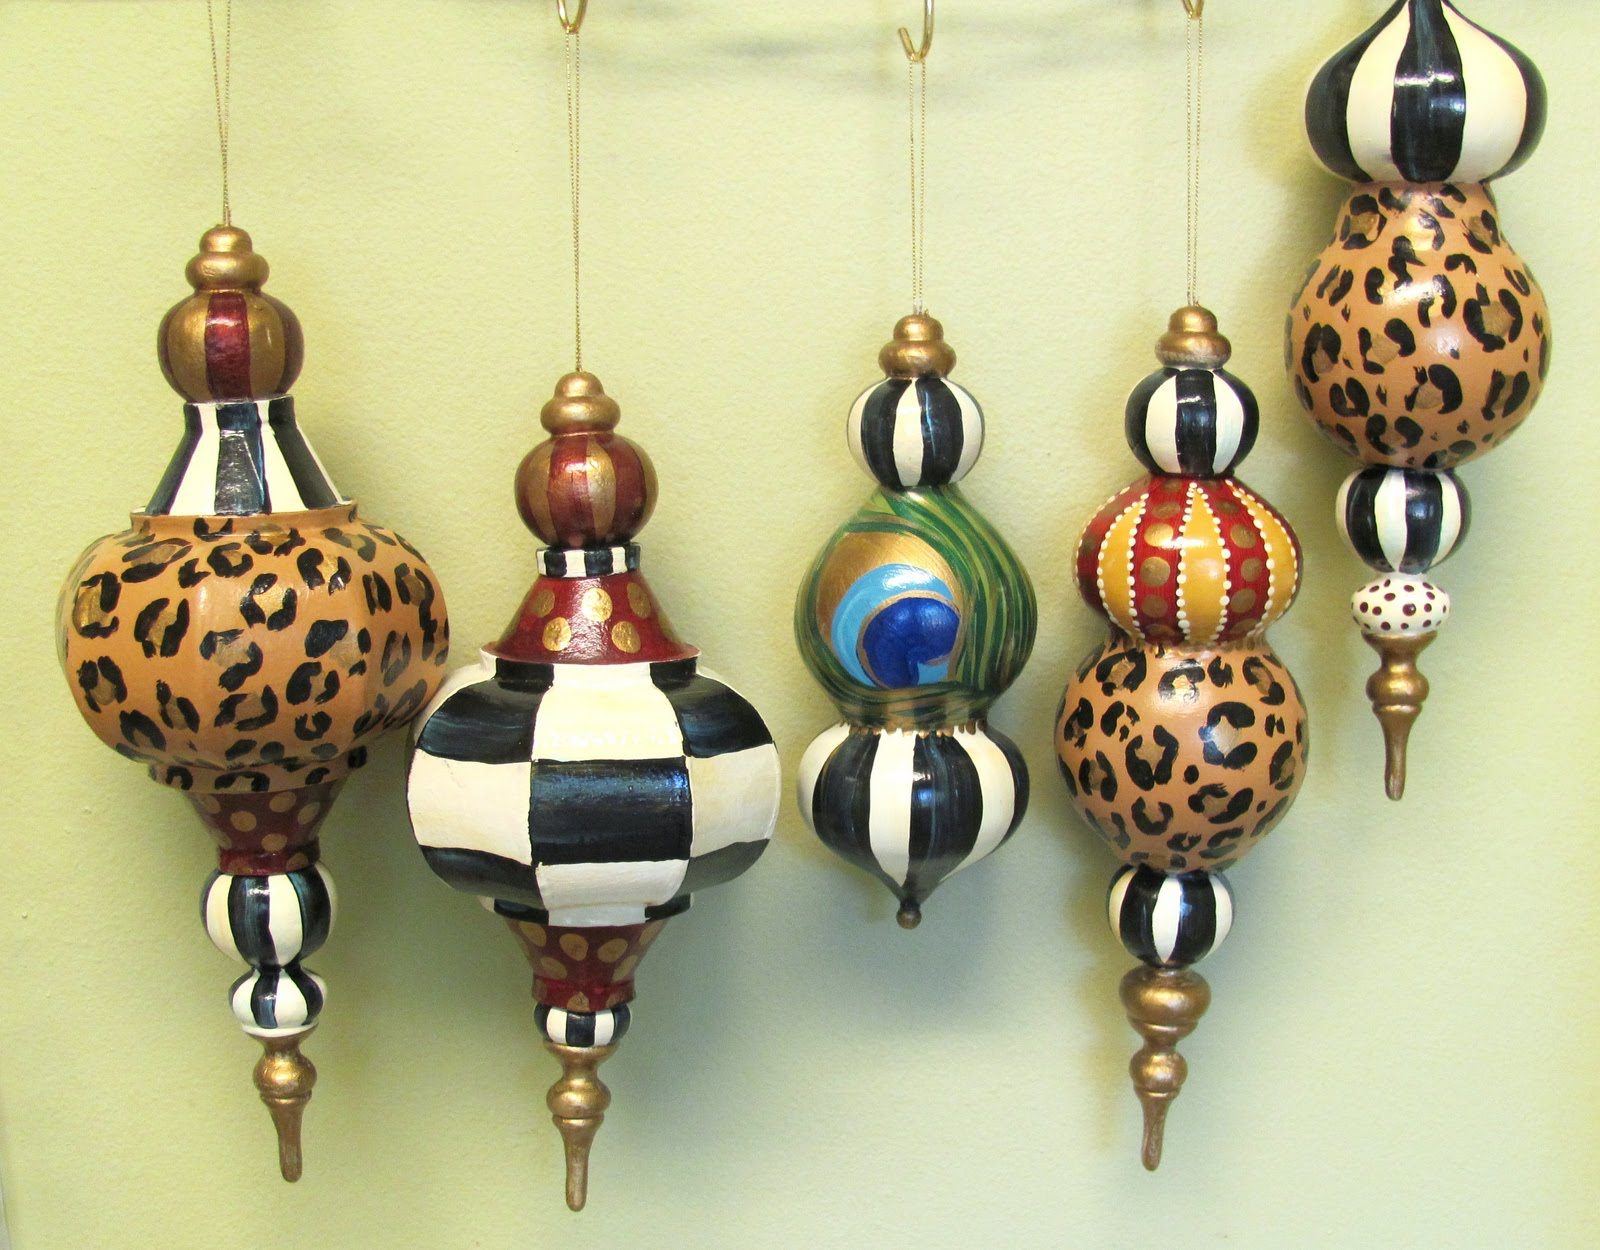 Hand Painted Christmas Ornaments Whimsical, DIY Large Paper Mache ...